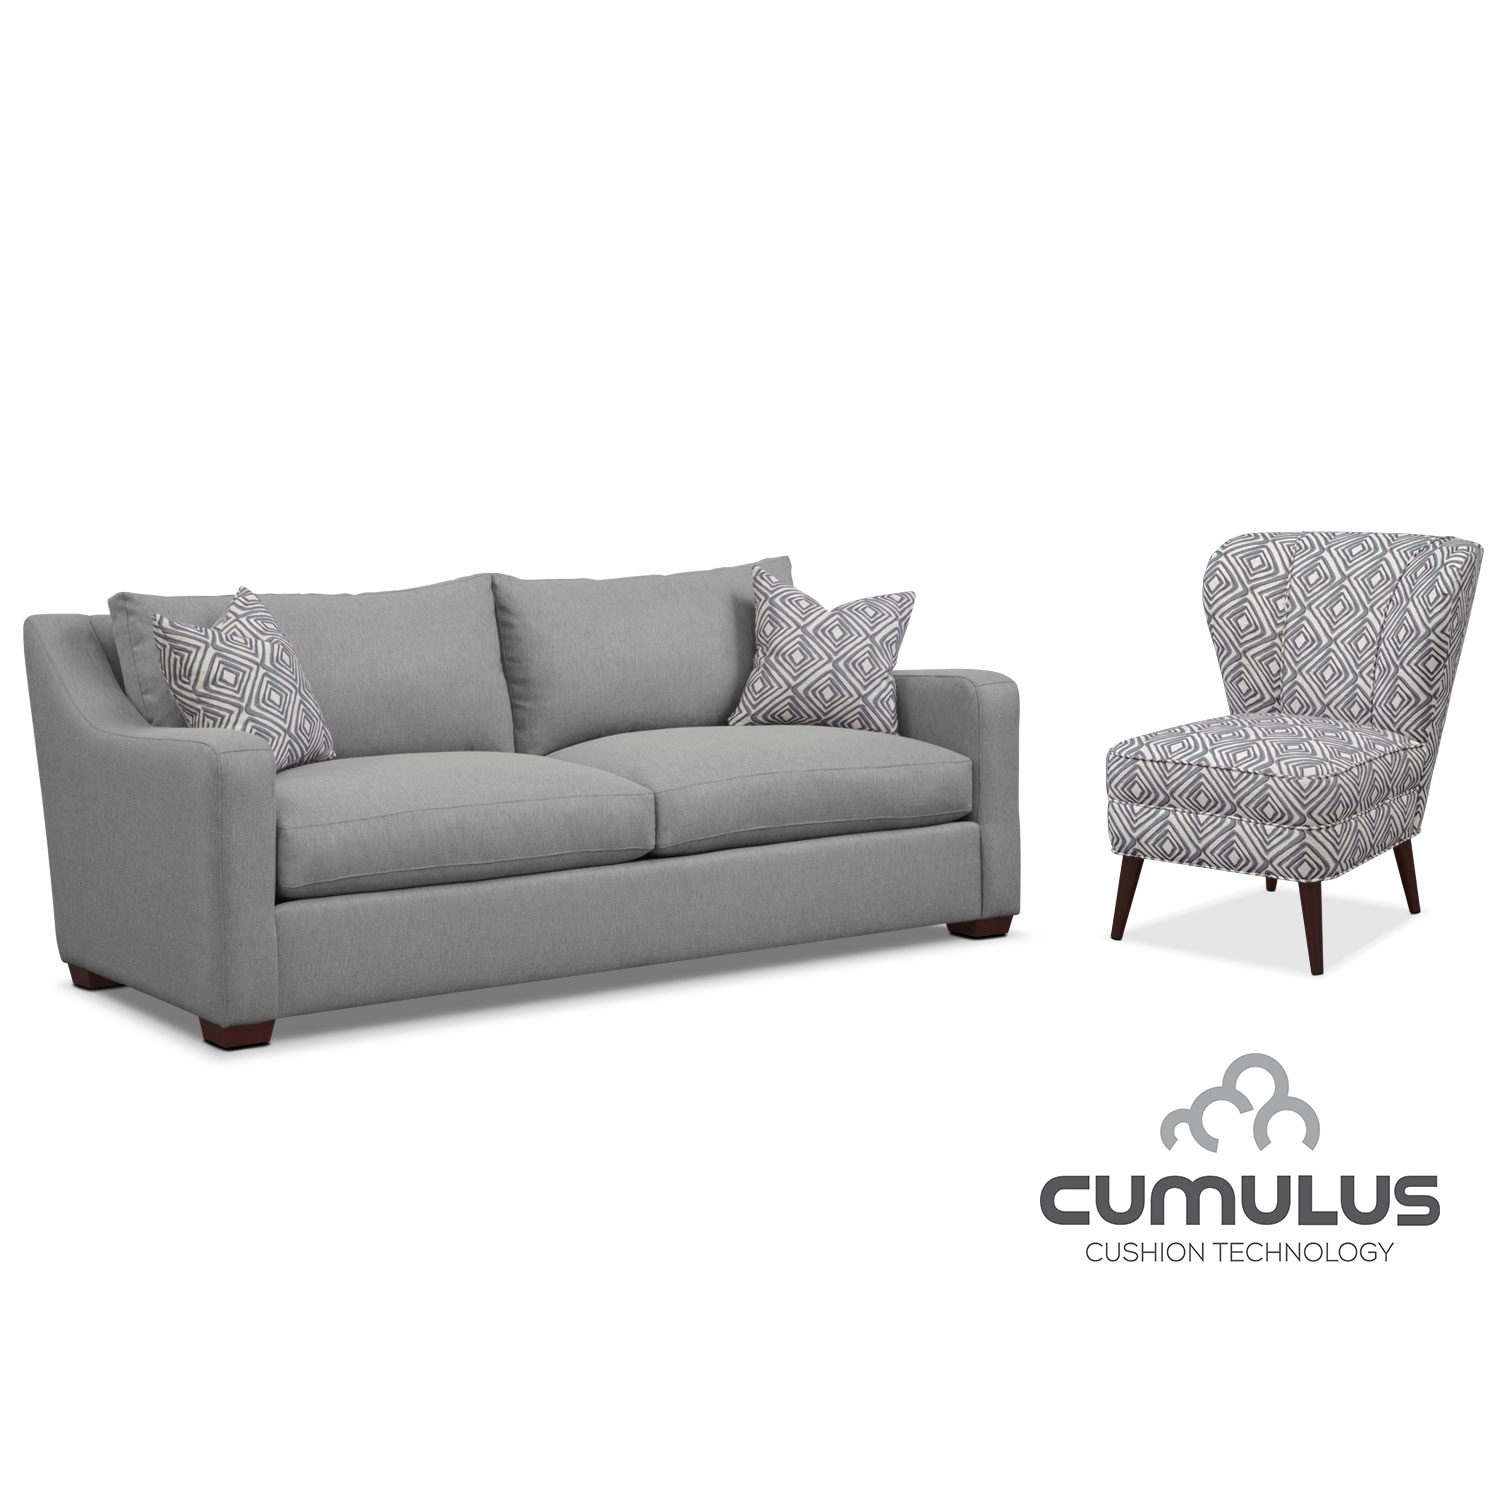 Living Room Furniture - Jules Cumulus Sofa and Accent Chair Set- Gray